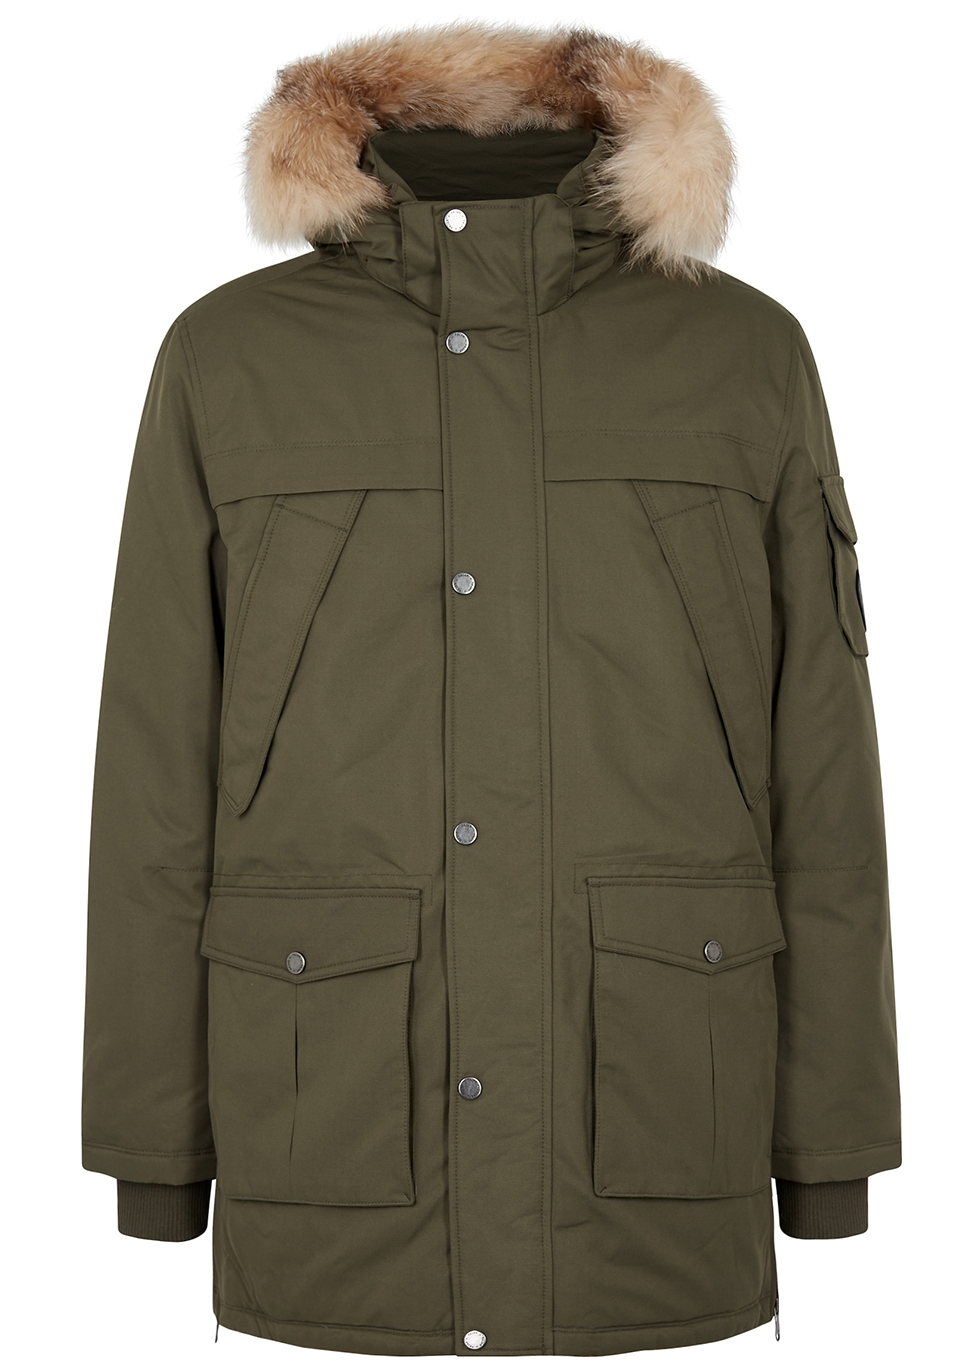 PAJAR Ethan Army Green Fur-Trimmed Shell Parka in Olive